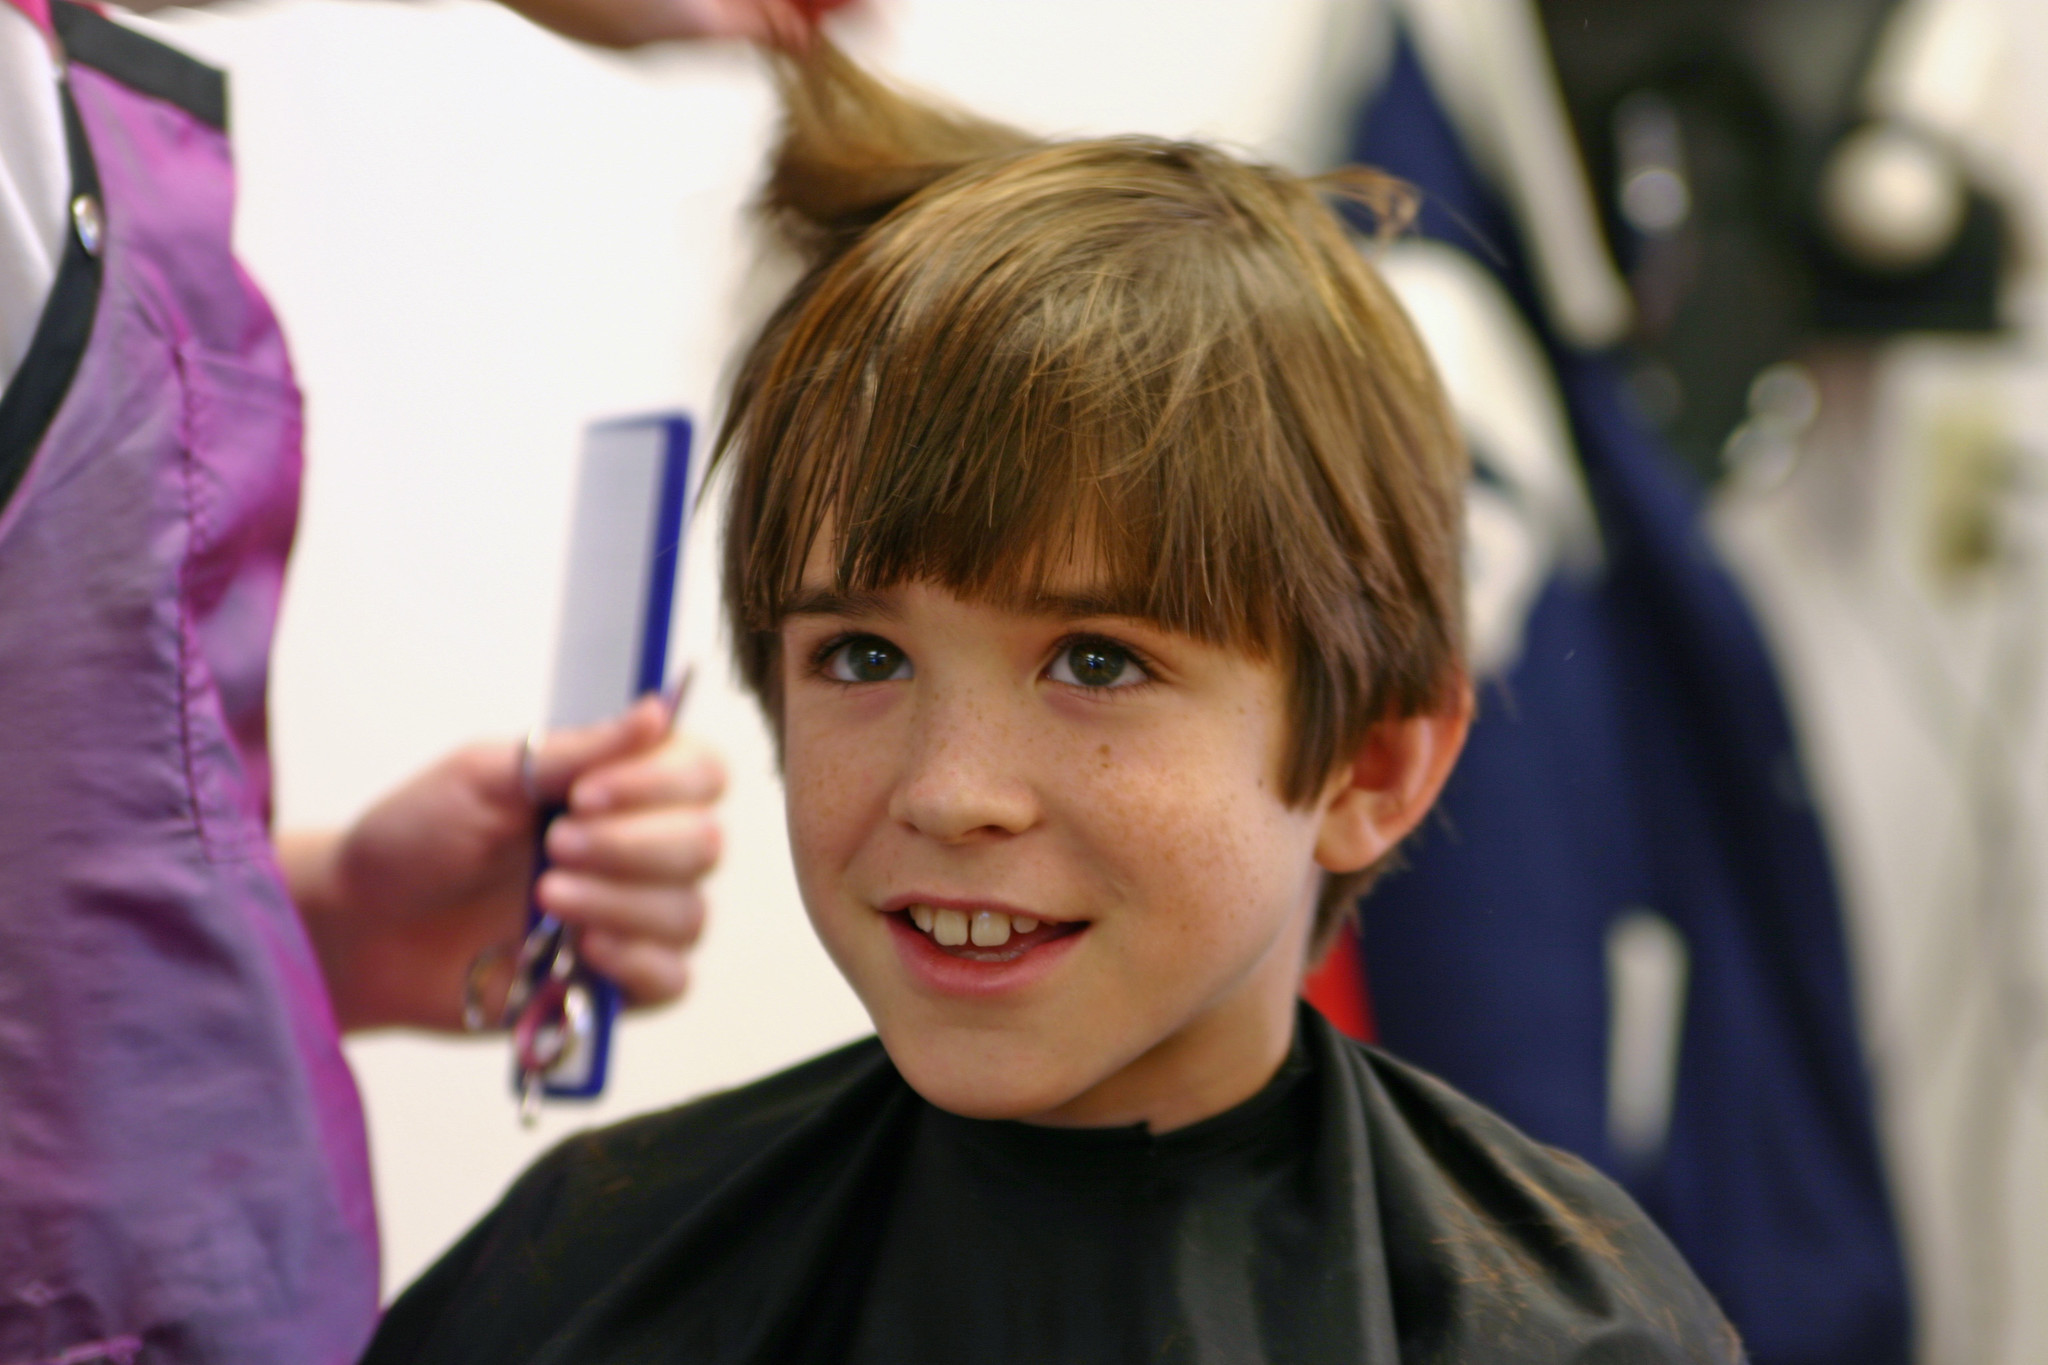 cheap kid haircuts back to school 10 haircuts for free 10 rewards at 5517 | sfl back to school 10 dollar haircuts jc penney 20170724